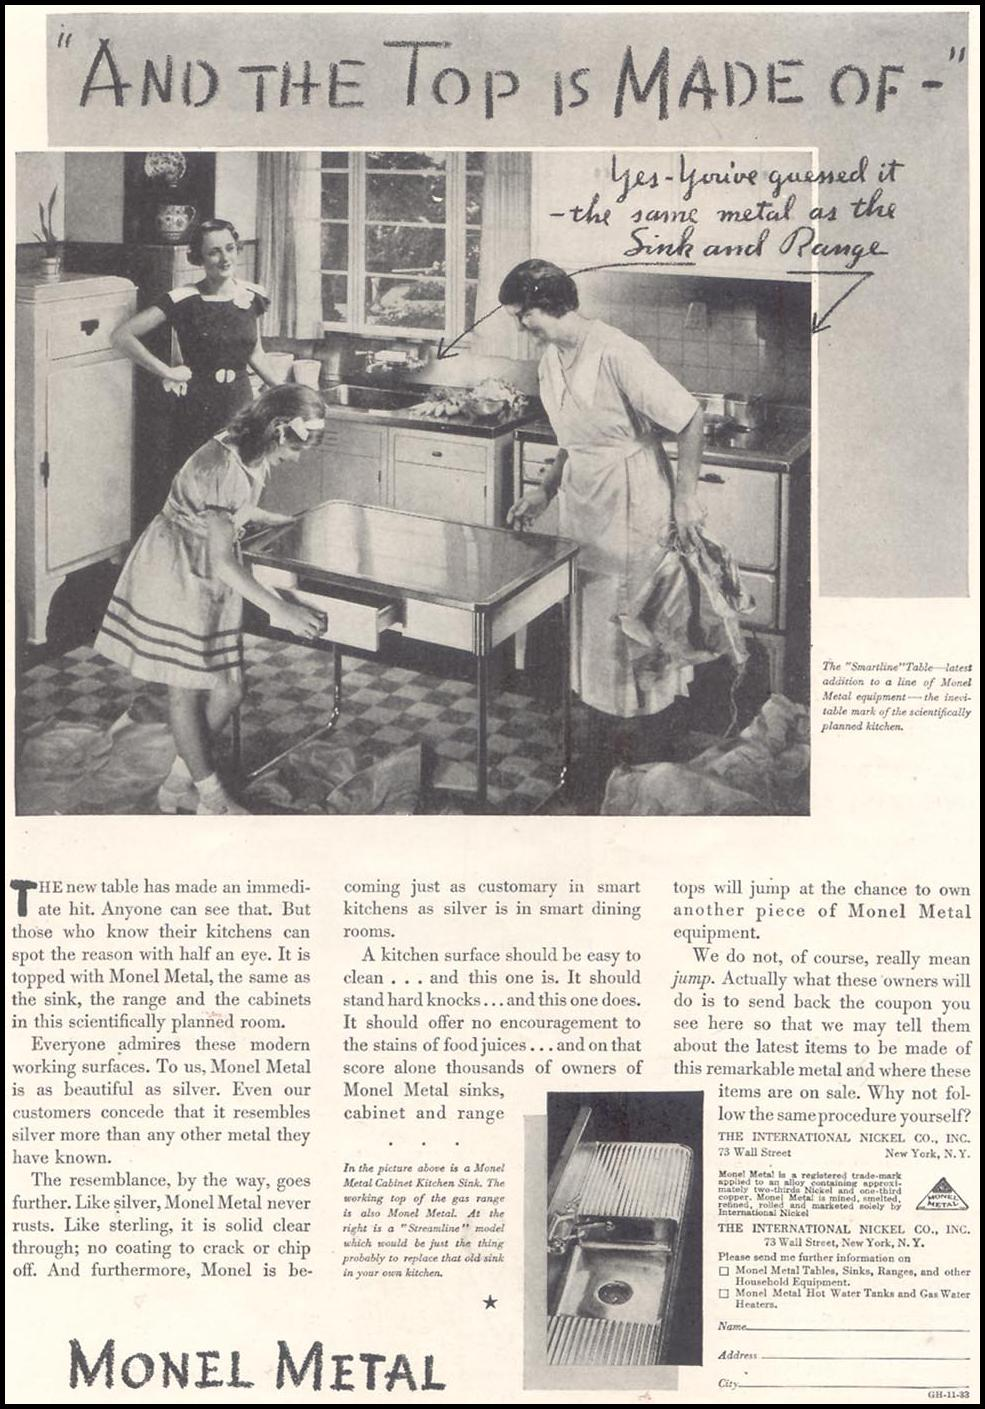 MONEL METAL GOOD HOUSEKEEPING 11/01/1933 p. 141